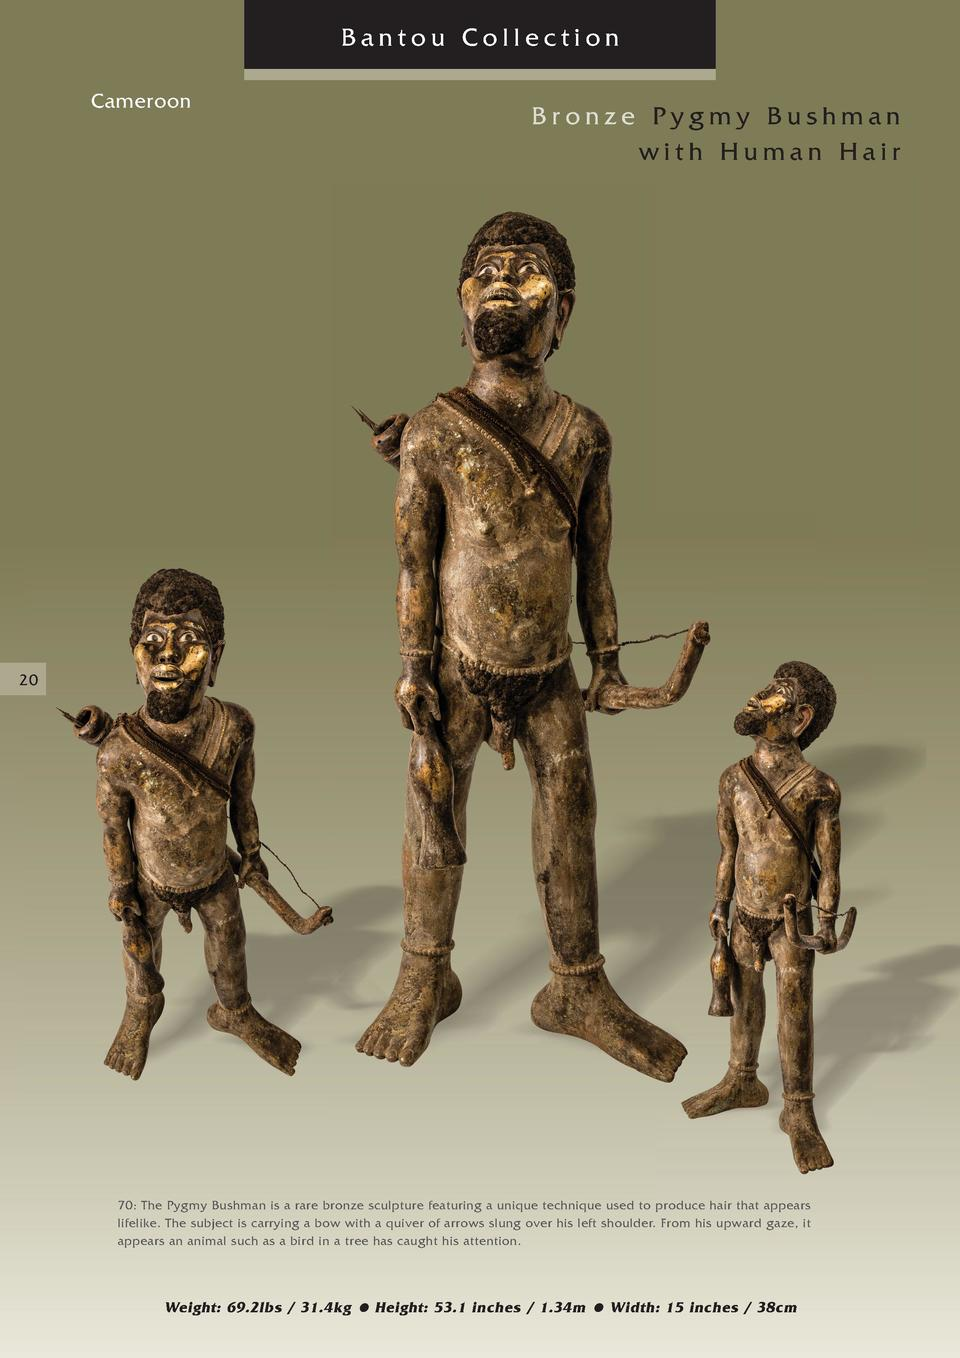 Bantou Collection Cameroon  Bronze Pygmy Bushman with Human Hair  20  70  The Pygmy Bushman is a rare bronze sculpture fea...